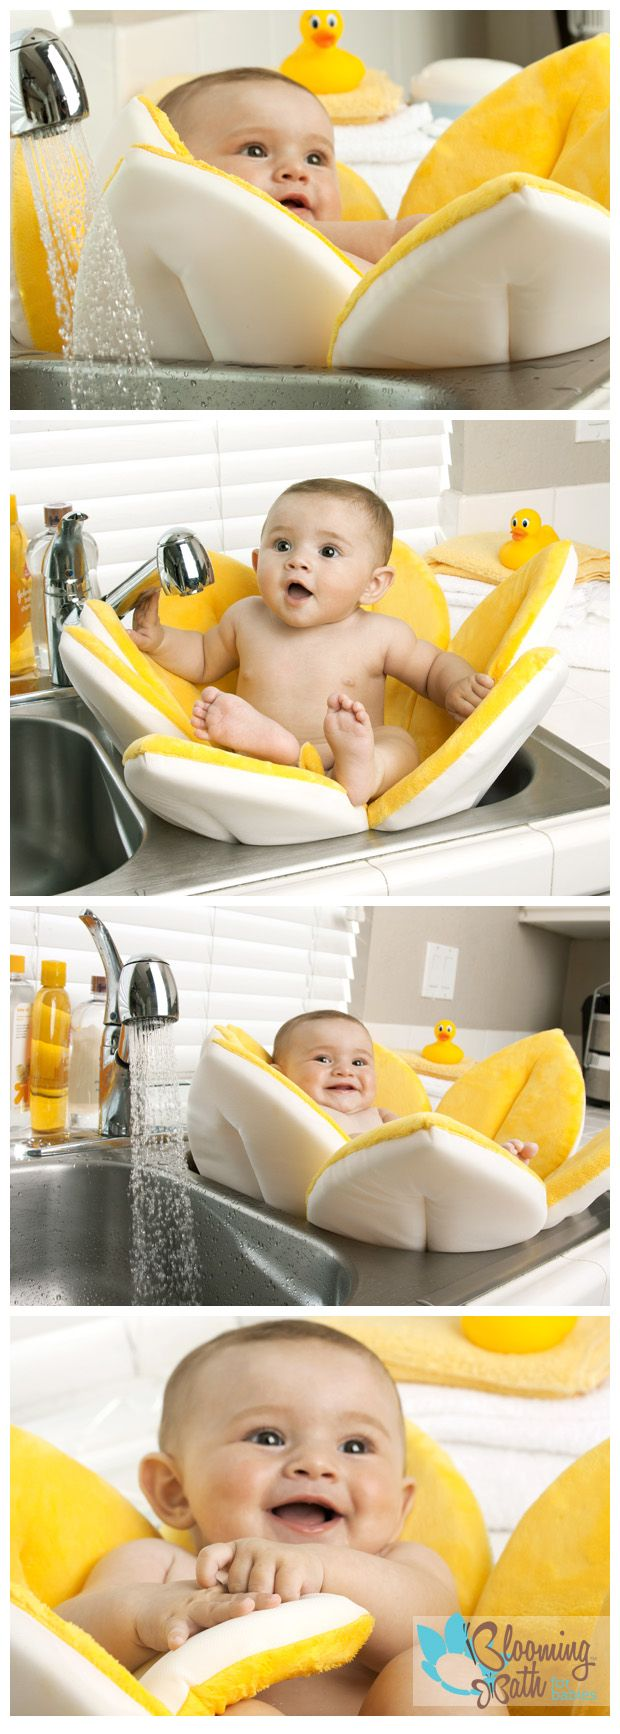 The Blooming Bath for babies is loved by parents and babies around the world. Why would anyone want to bathe their baby in a hard plastic tub when they could surround their little one in the cuddly softness of an adorable plush flower?!  The best way to bathe your baby, and a perfect baby shower gift.  Available in lots of bright colors!